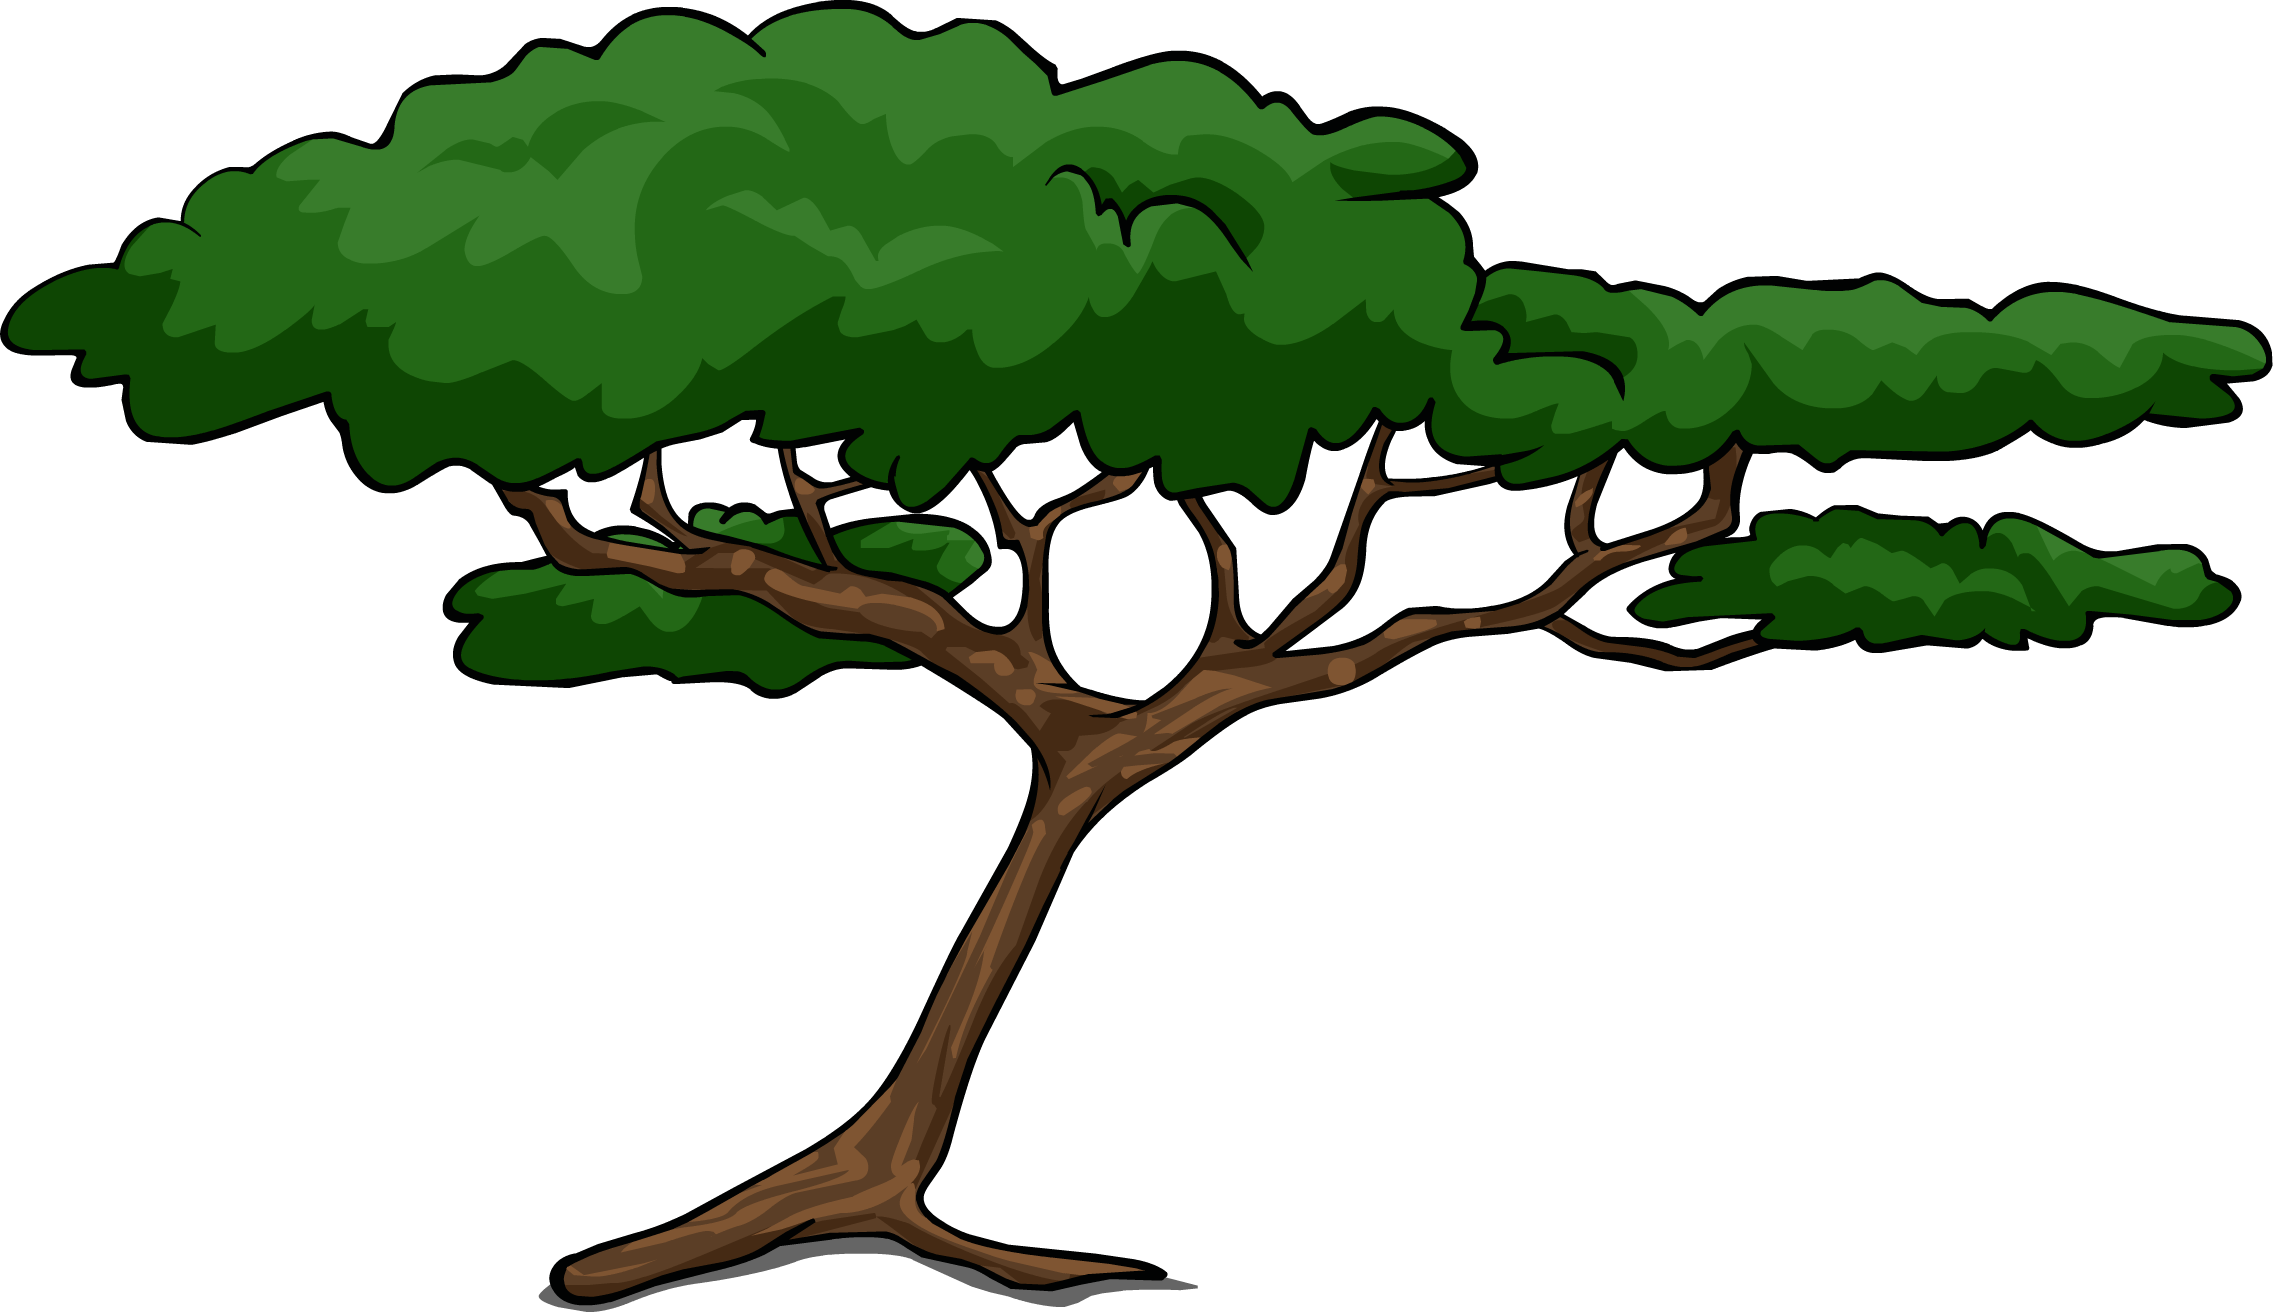 picture download Jungle trees clipart. Bushes bare free on